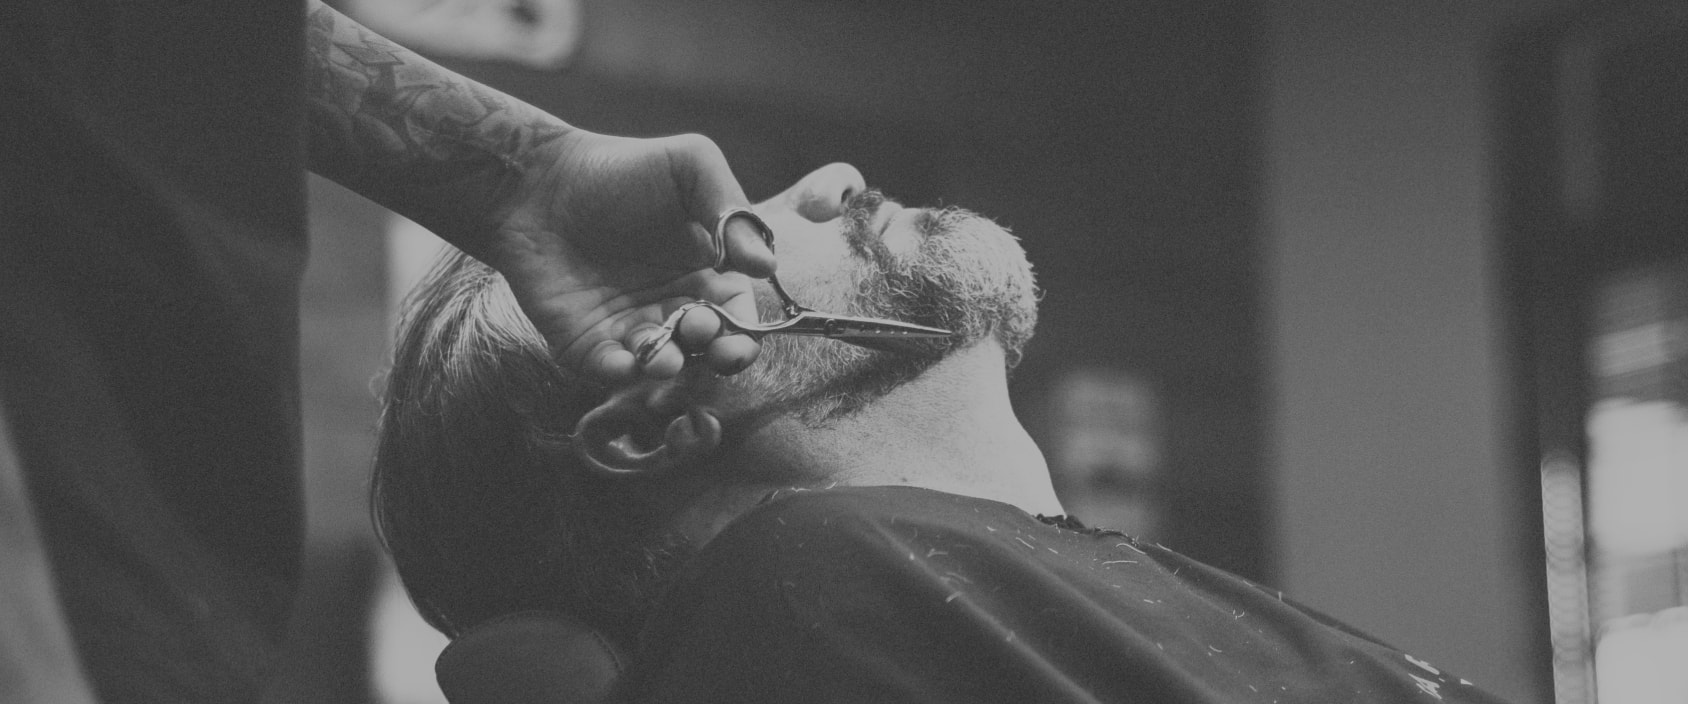 man getting his beard trimmed with scissors in barber chair